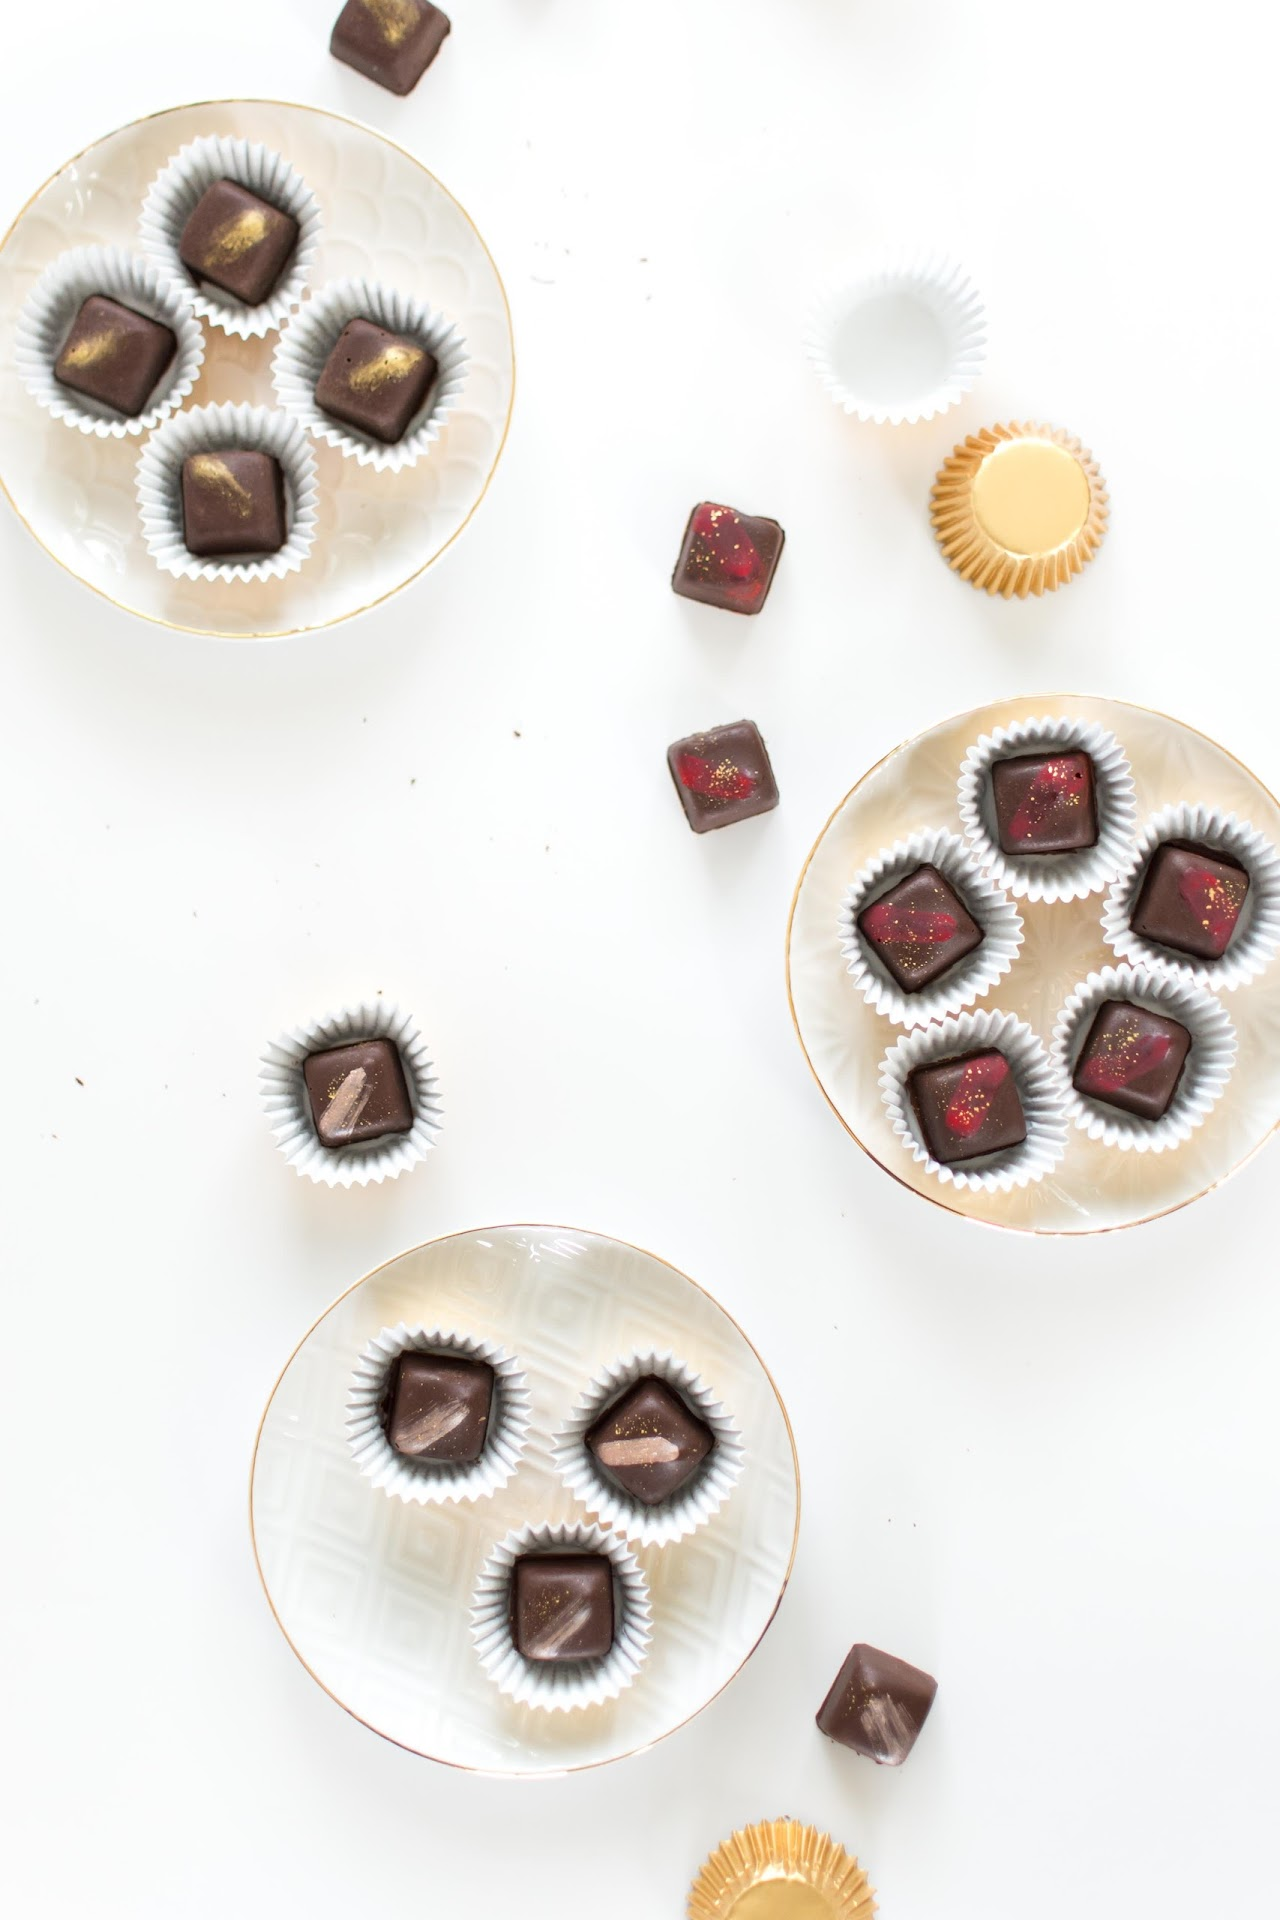 how to make chocolates, chocolates with filling, how to make chocolates with a mold, how to makes gourmet chocolates, how to make chocolates at home, how to decorate chocolates, chocolate gifts, gold luster dust, best gold dust, edible dust,